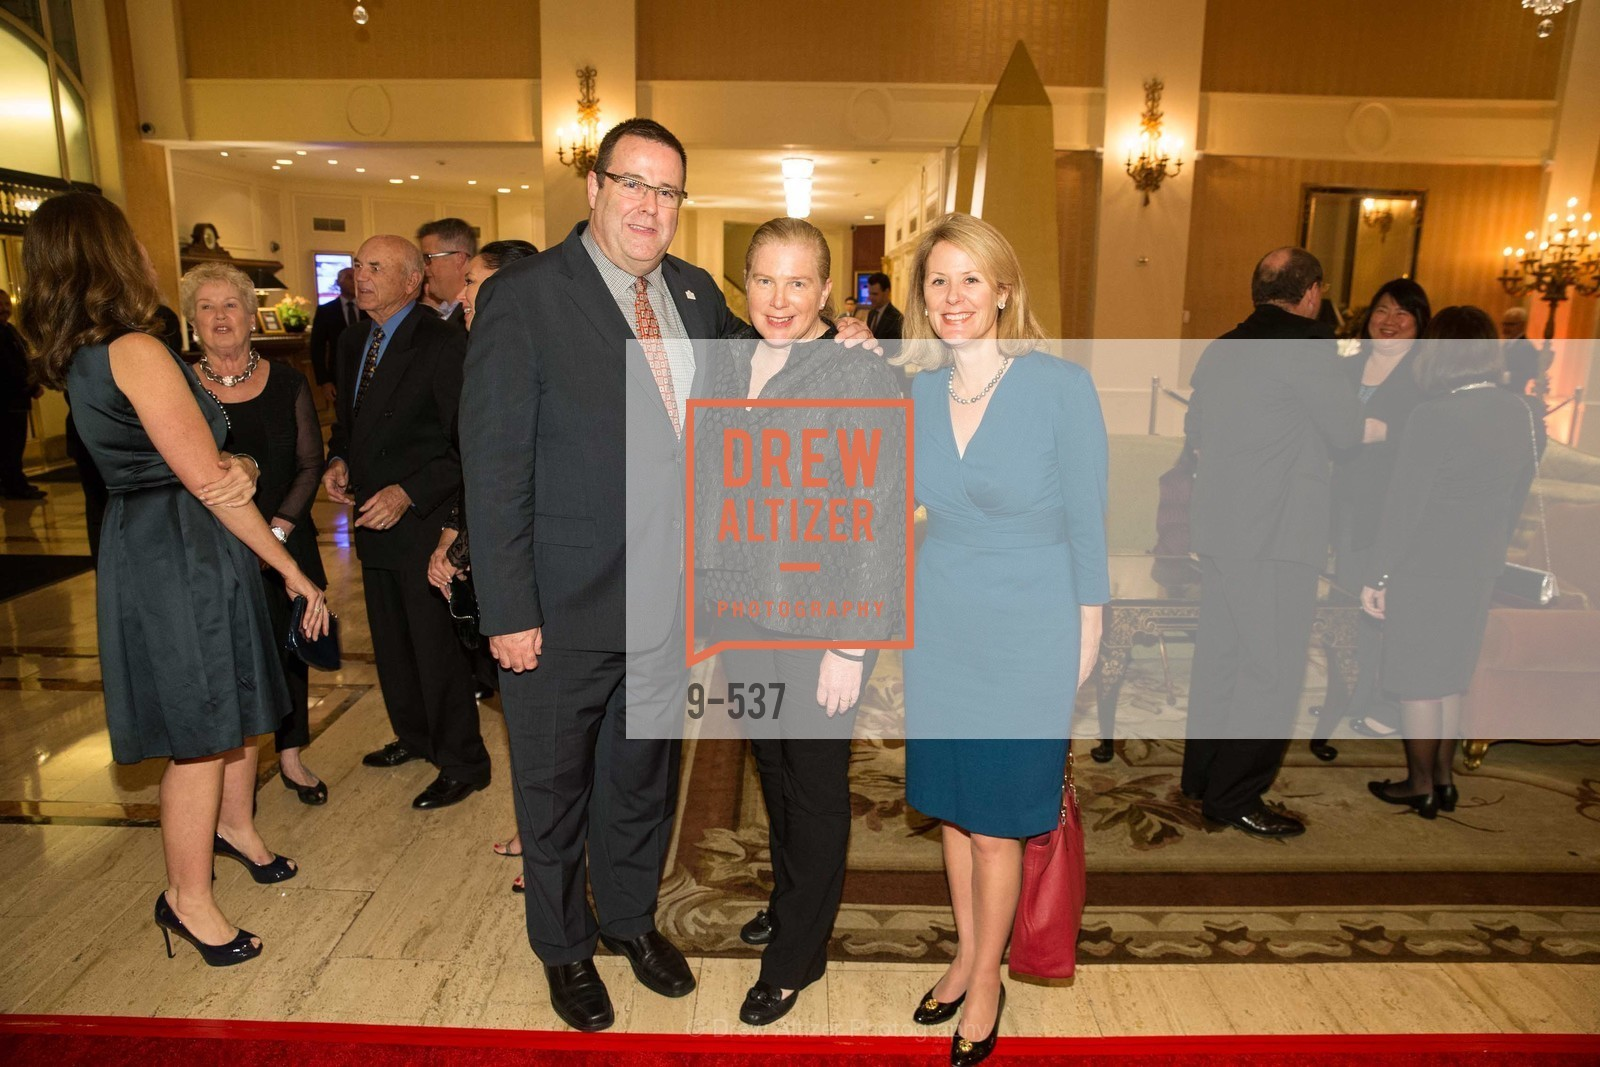 Kevin Carroll, Joanne Hayes-White, Kelly Powers, TOP OF THE MARK'S 75TH Anniversary Party, US, November 6th, 2014,Drew Altizer, Drew Altizer Photography, full-service agency, private events, San Francisco photographer, photographer california